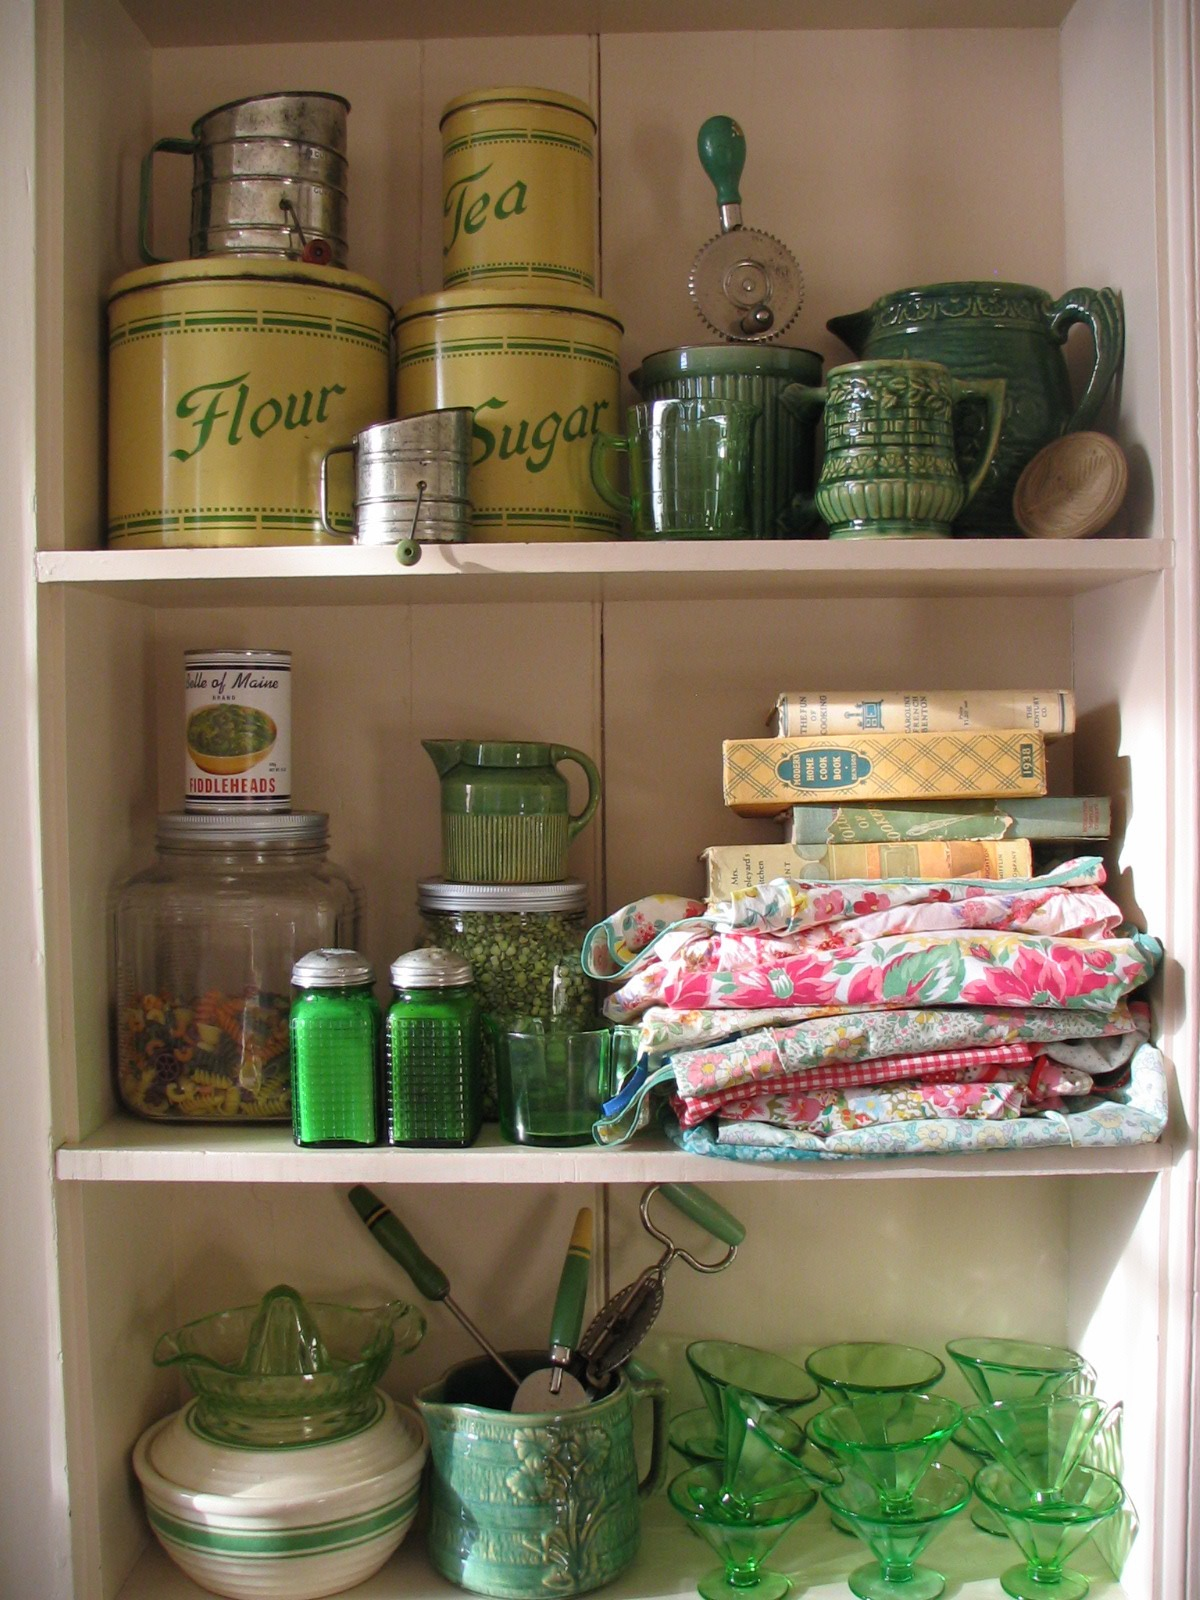 trends cluttered can pantrys again by once shelves it useful take storage control tucson pantry we of space and make poueriet pantries help closet